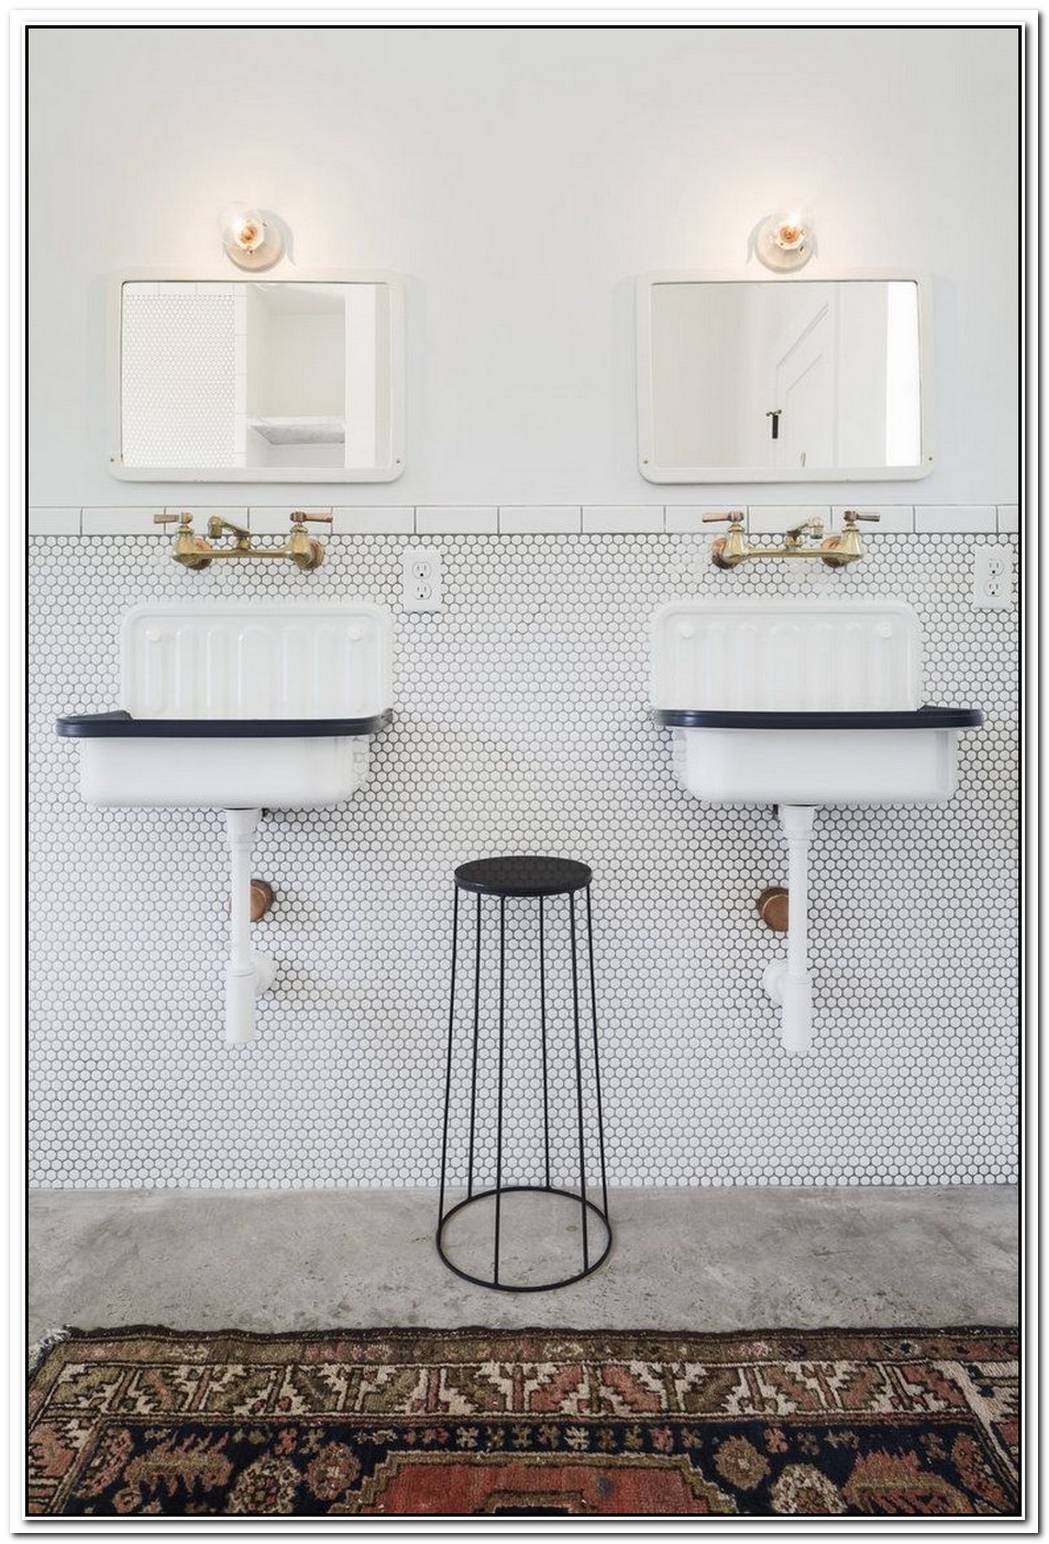 13 Farmhouse Bathroom Ideas That You'Ll Definitely Want To Duplicate